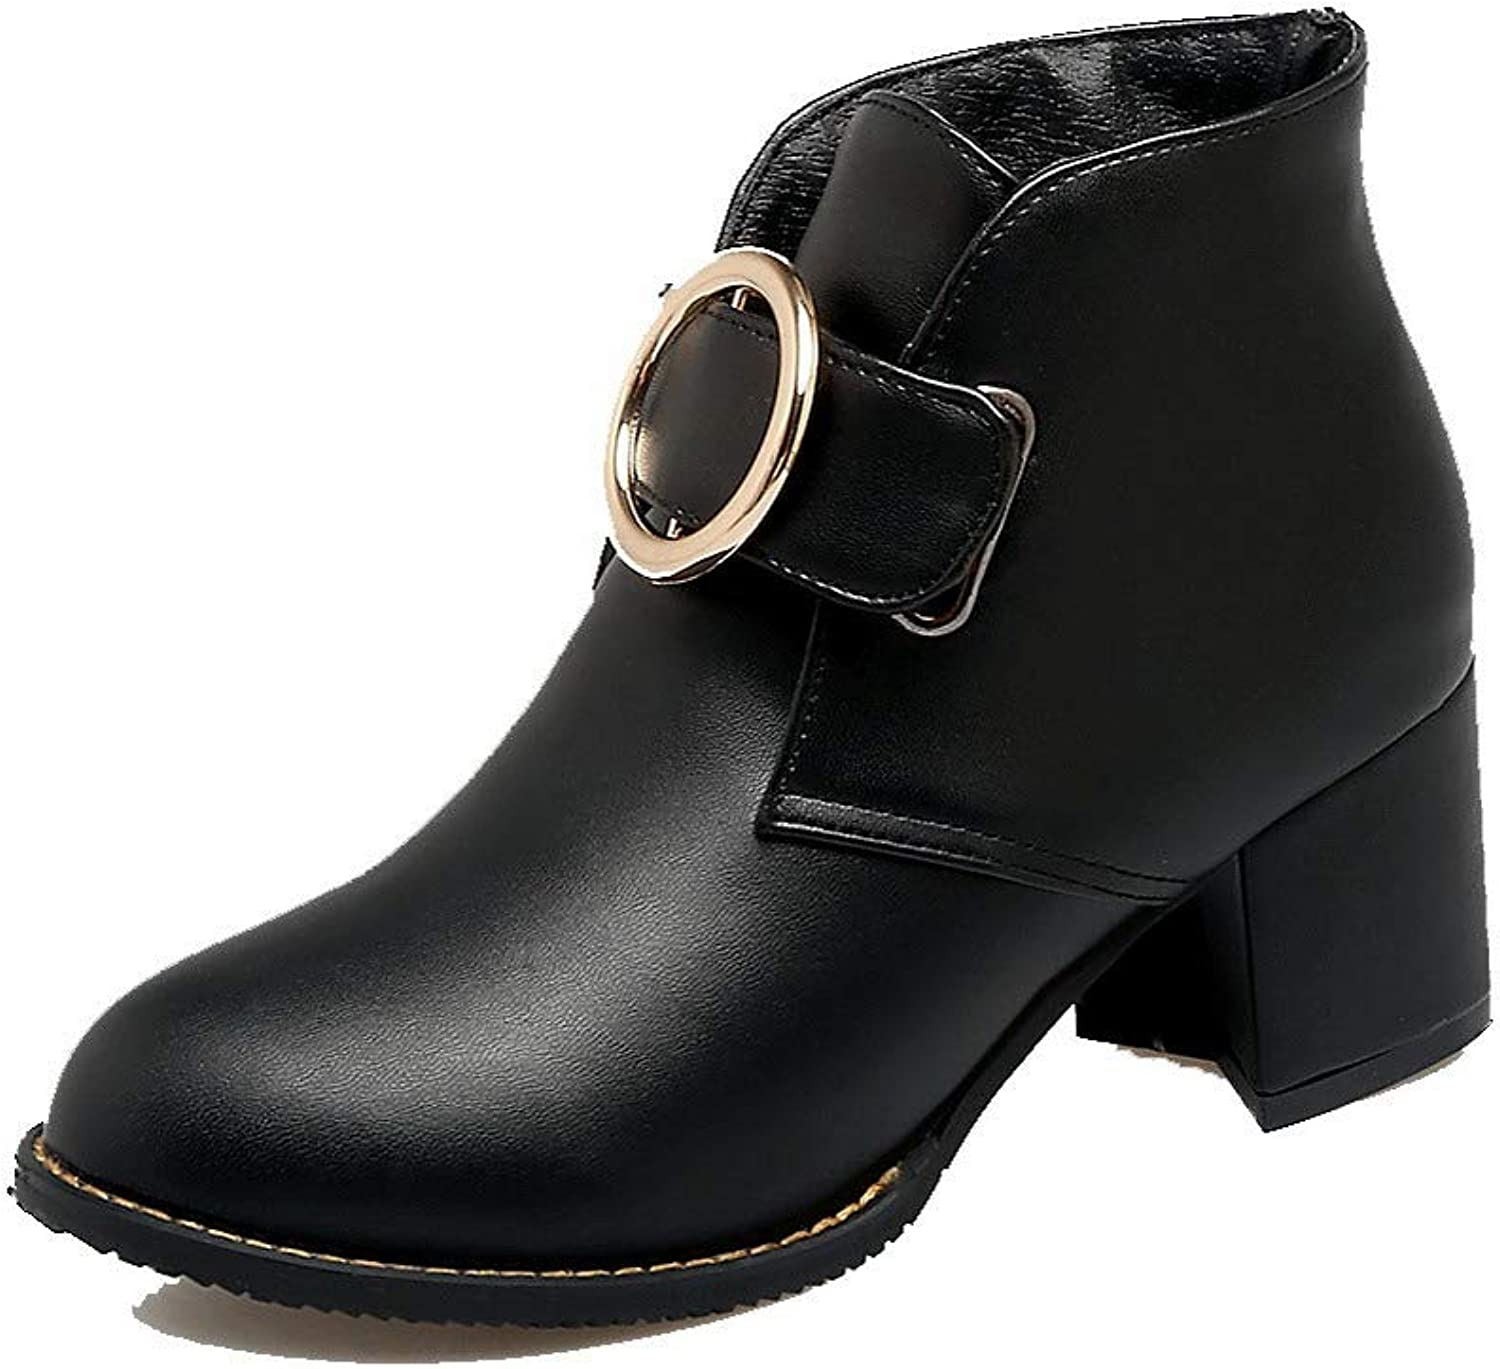 WeiPoot Women's Kitten-Heels Solid Closed-Toe Pu Hook-and-Loop Boots, EGHXH127404